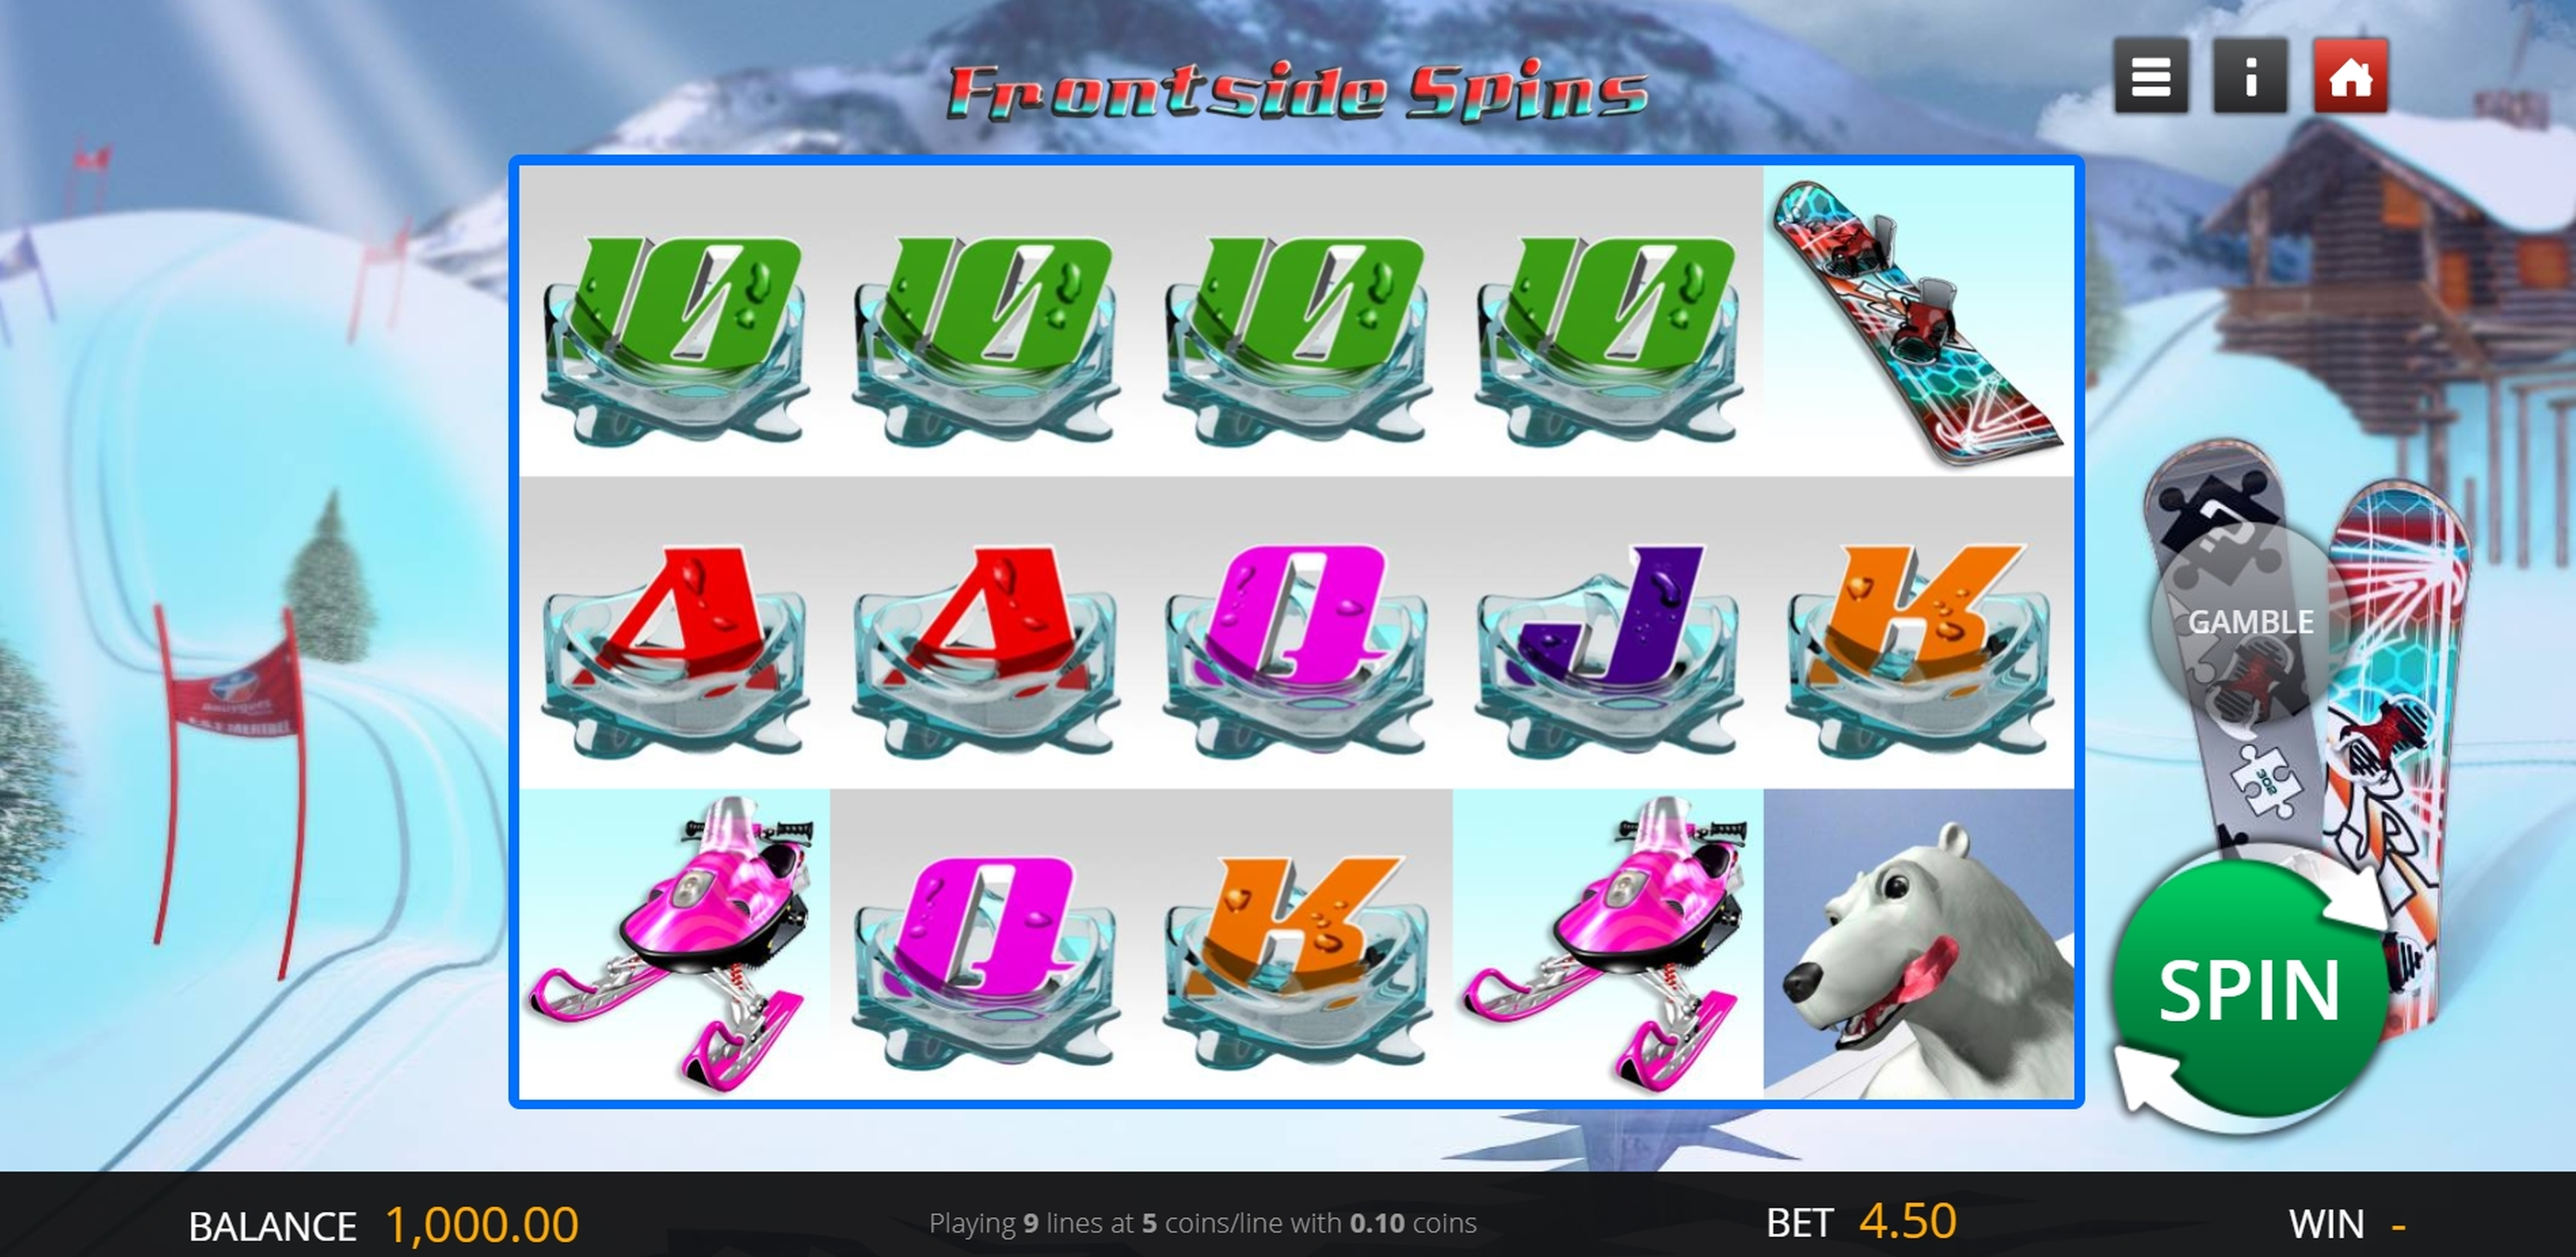 Reels in Frontside Spins Slot Game by Genii